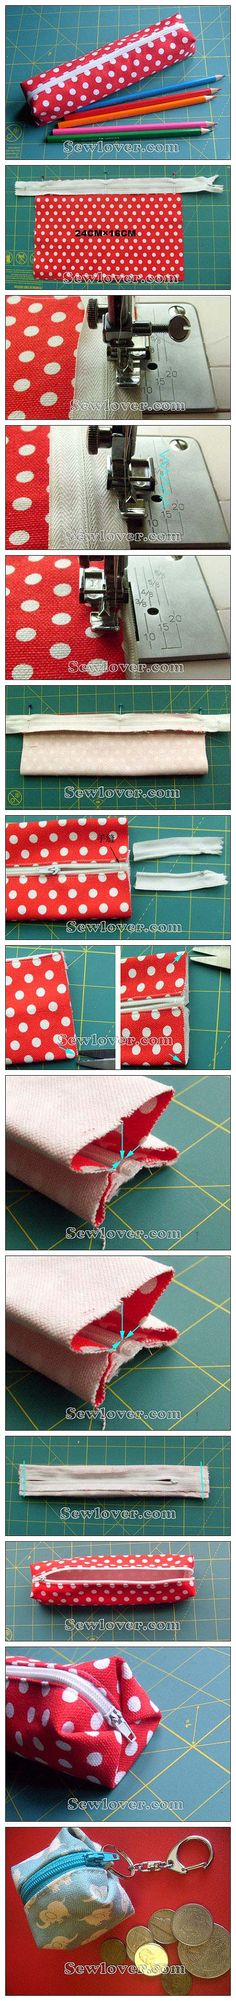 Tutorial for boxy pouch  @Kelsey Myers Myers Myers Best